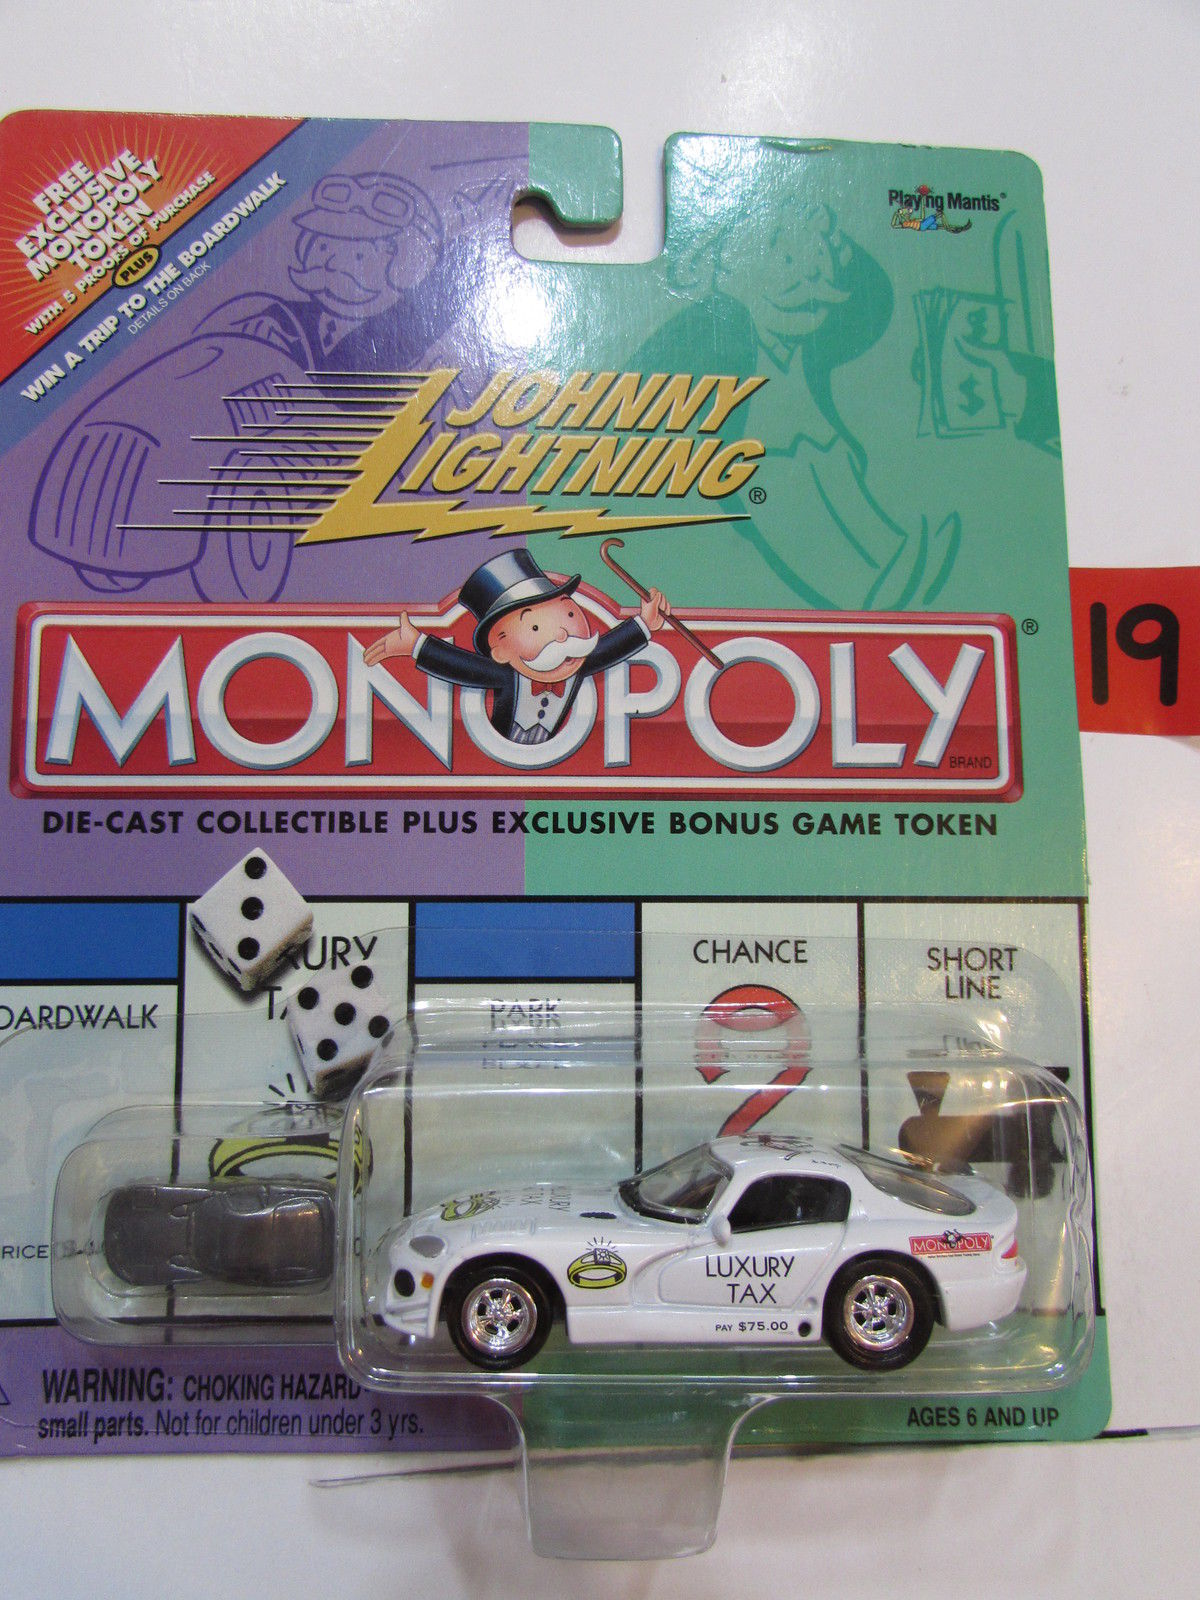 JOHNNY LIGHTNING MONOPOLY LUXUARY TAX - DODGE VIPER E+